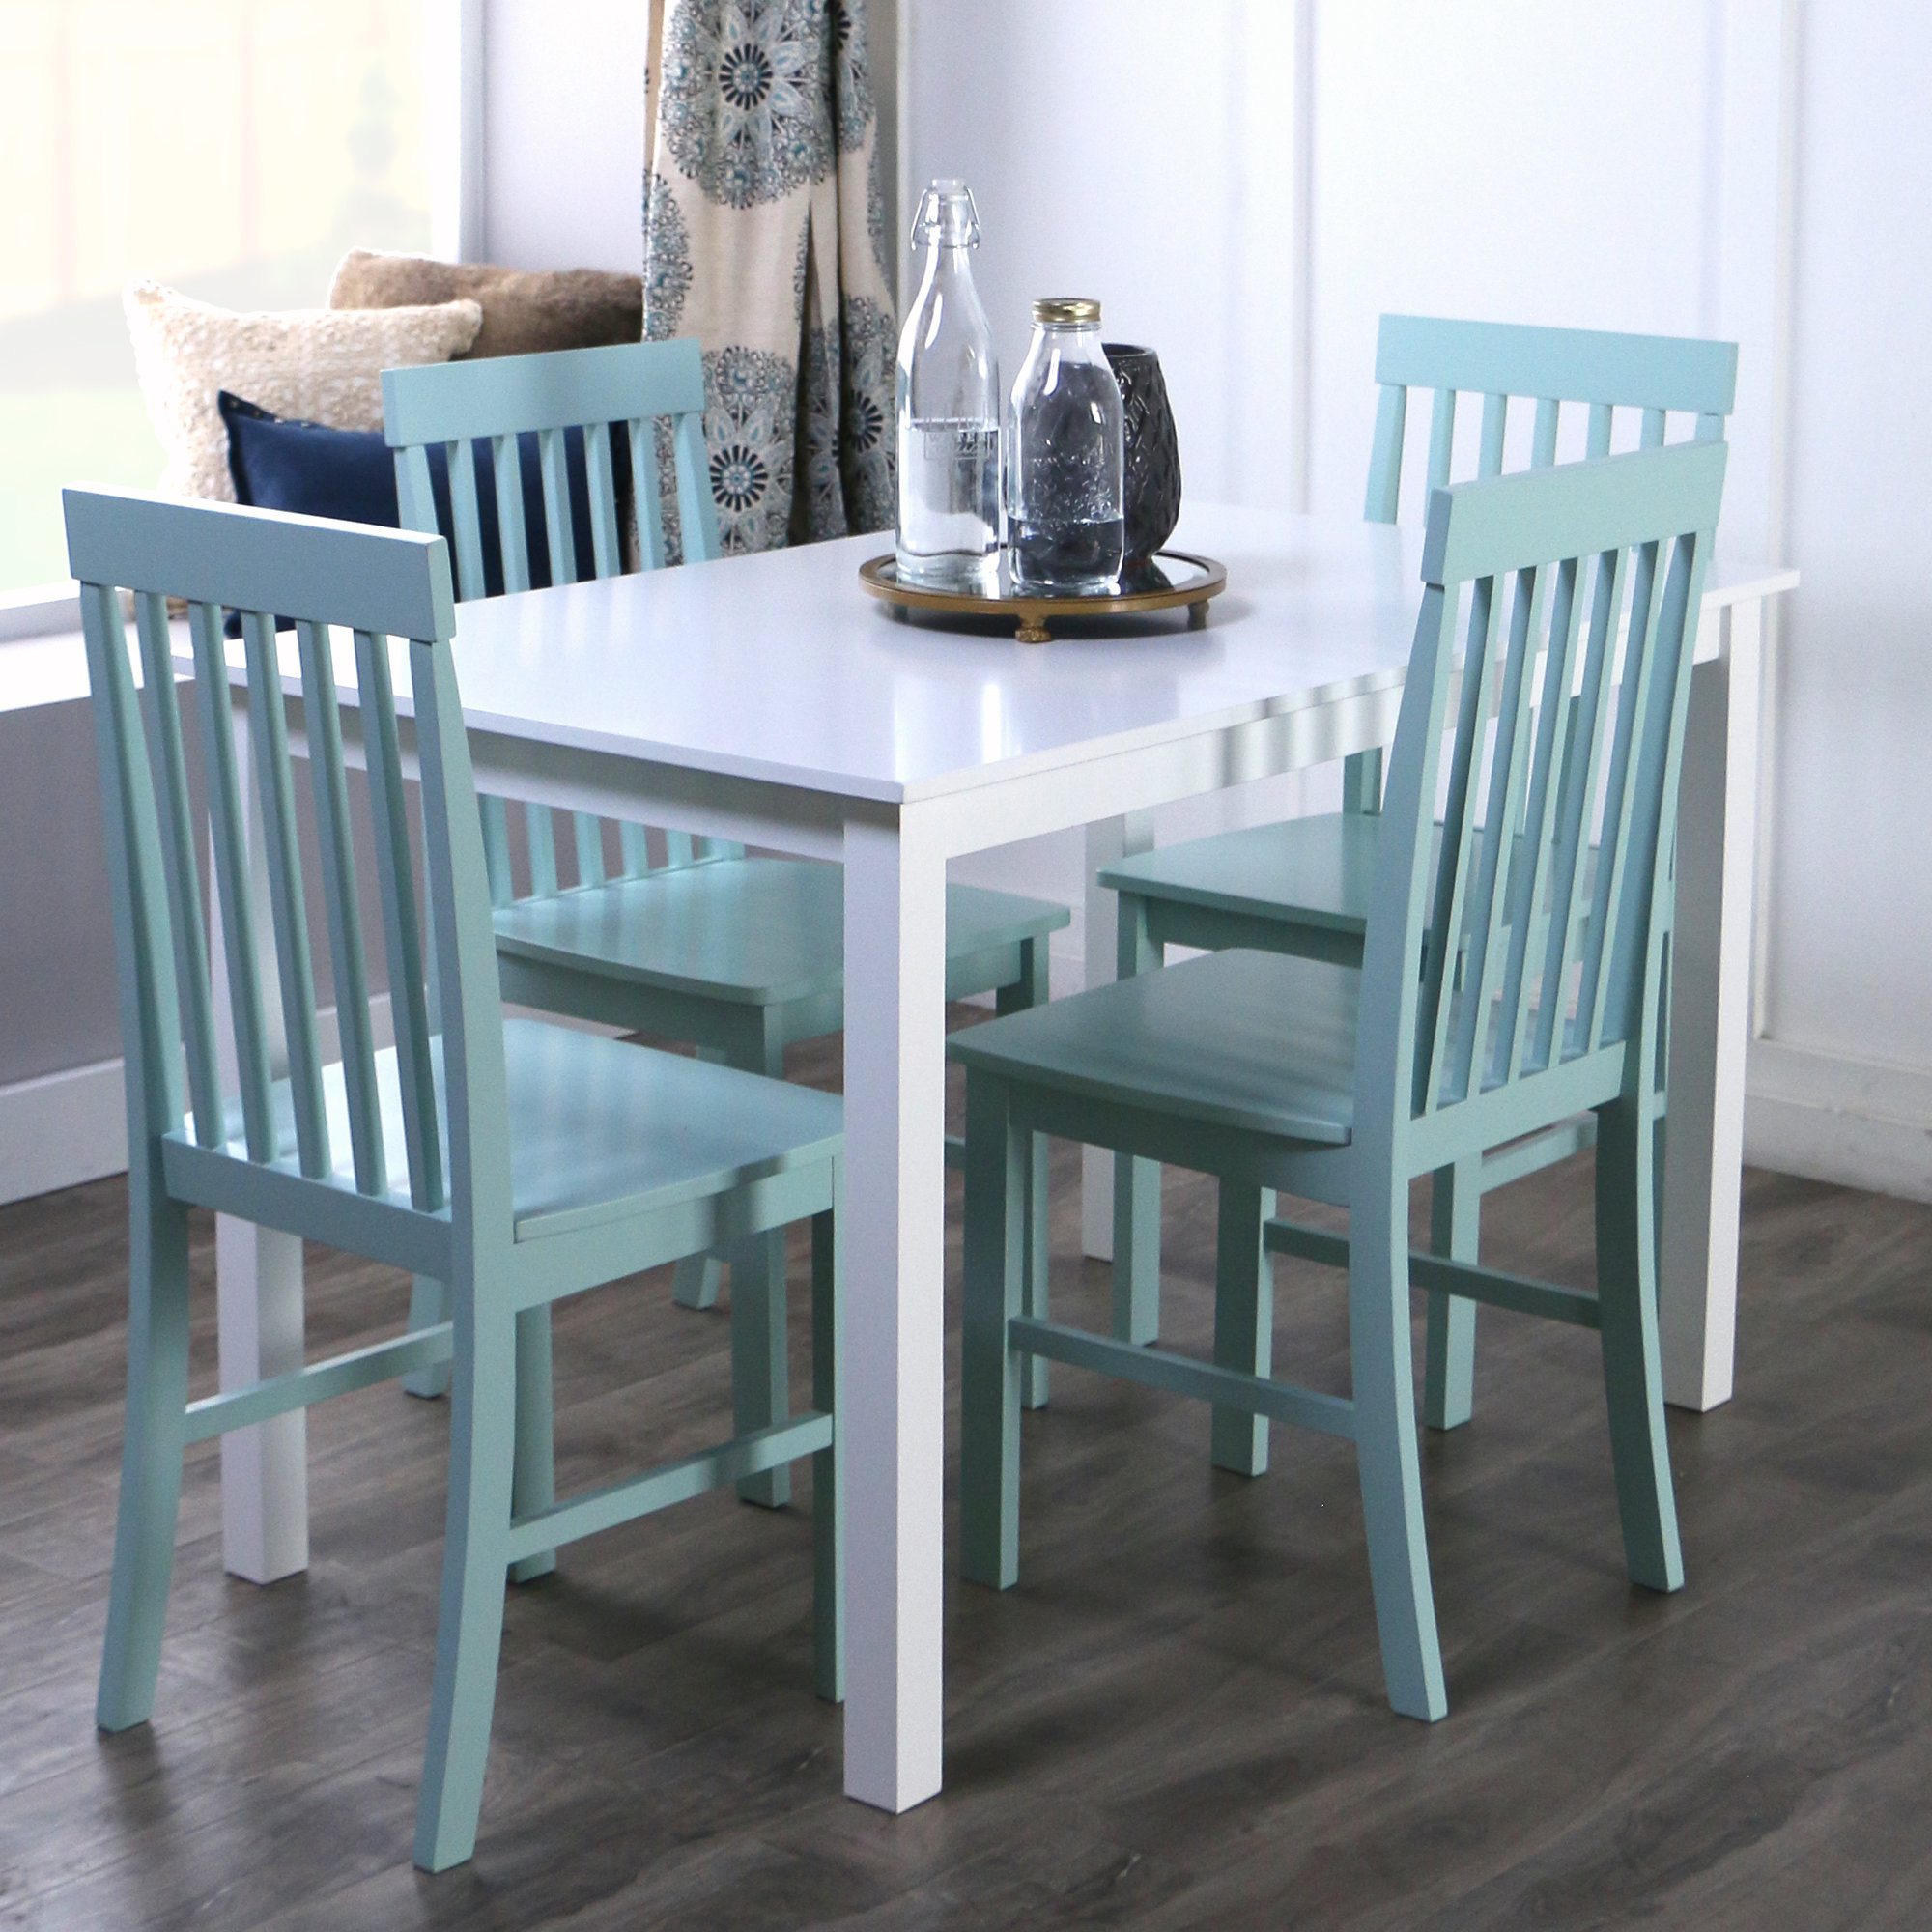 Endicott 5 Piece Dining Set With Recent Pattonsburg 5 Piece Dining Sets (View 7 of 20)